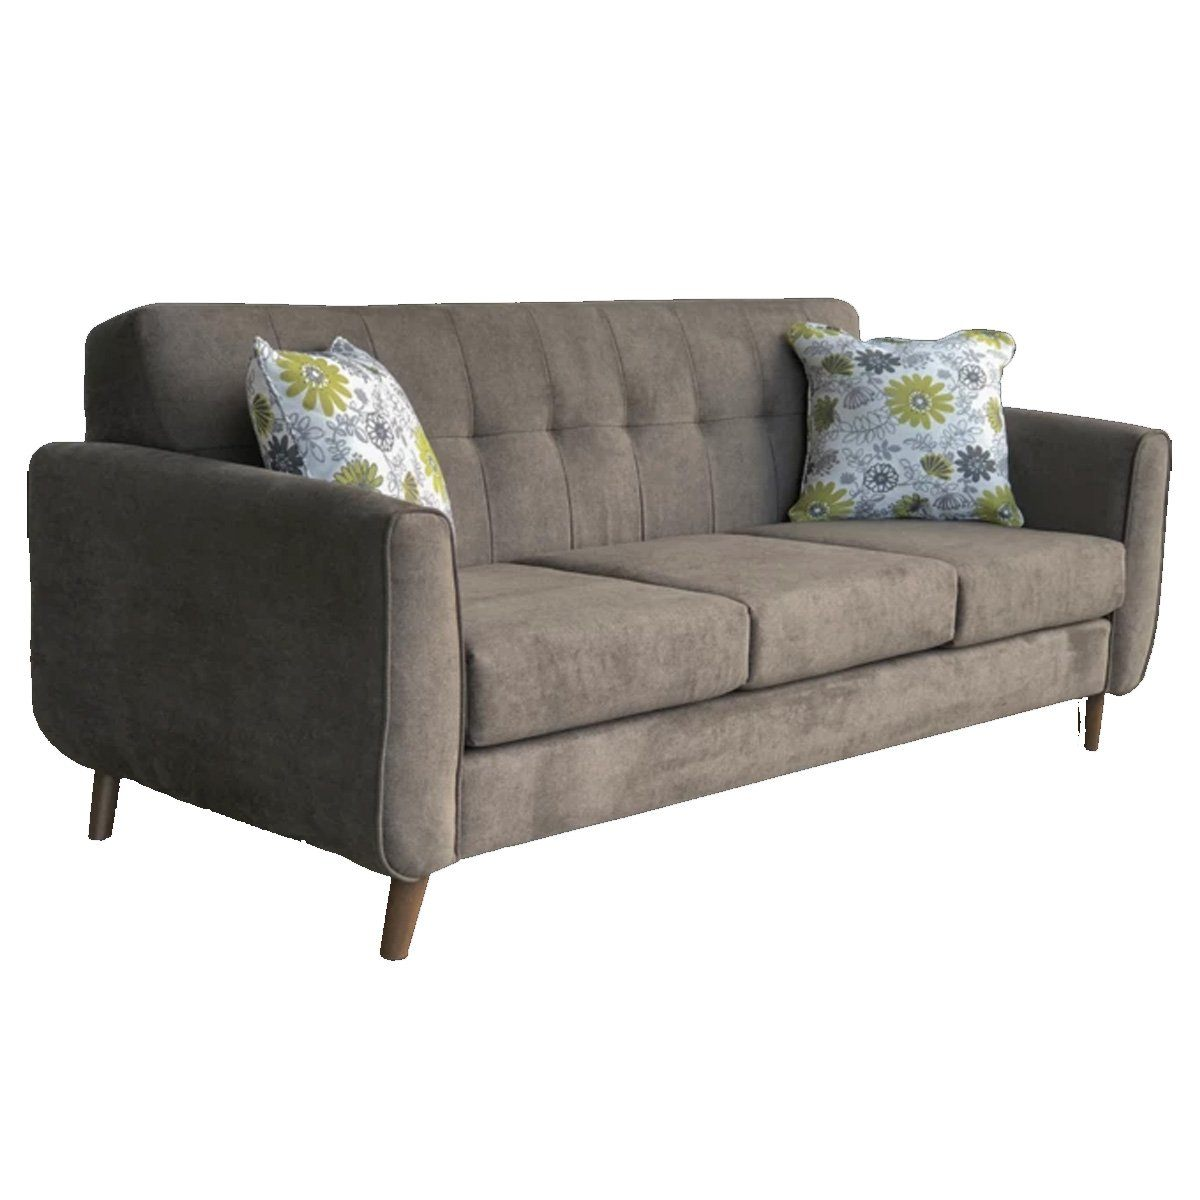 CENTURY Custom Sofa - Made in Canada | Showhome Furniture